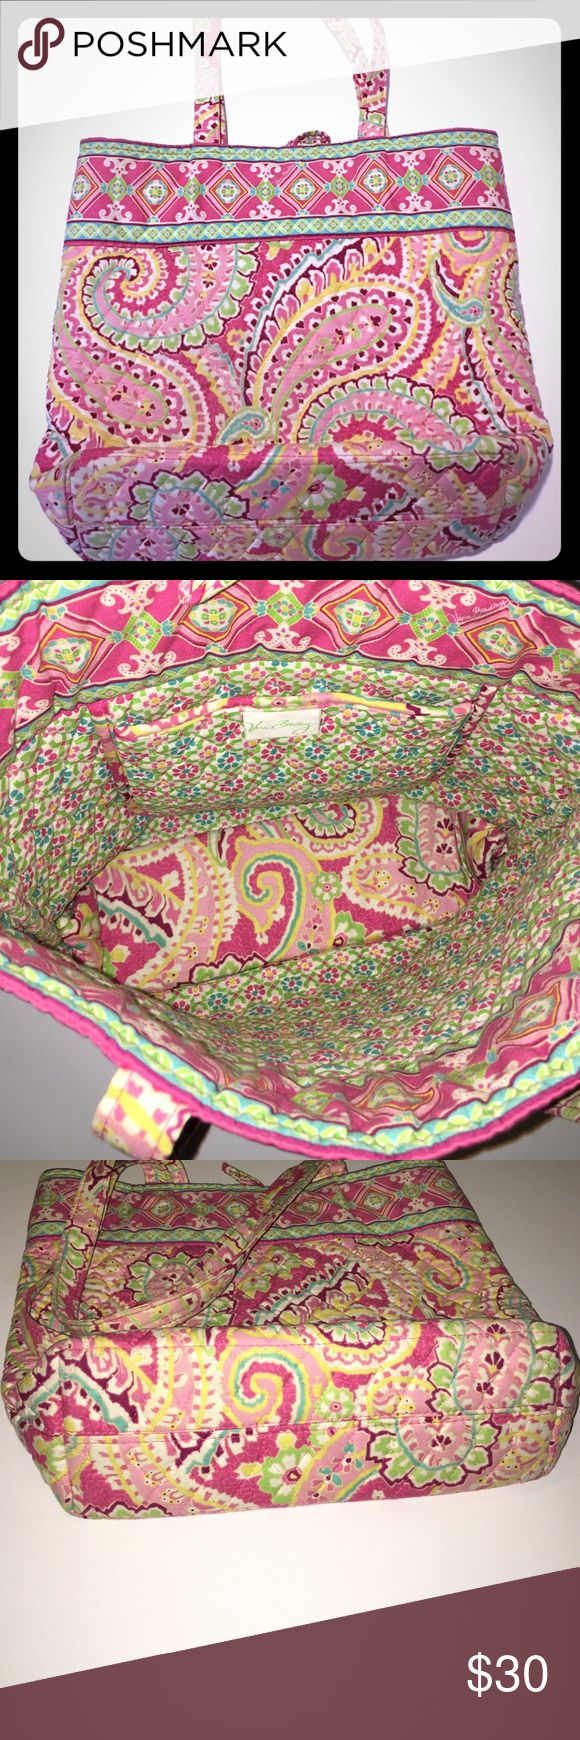 Vera Bradley Tote Vera Bradley tote. The color is called Capri Melon and it is retired. The button on the front is missing, but other than that it is in excellent condition! Bags Totes